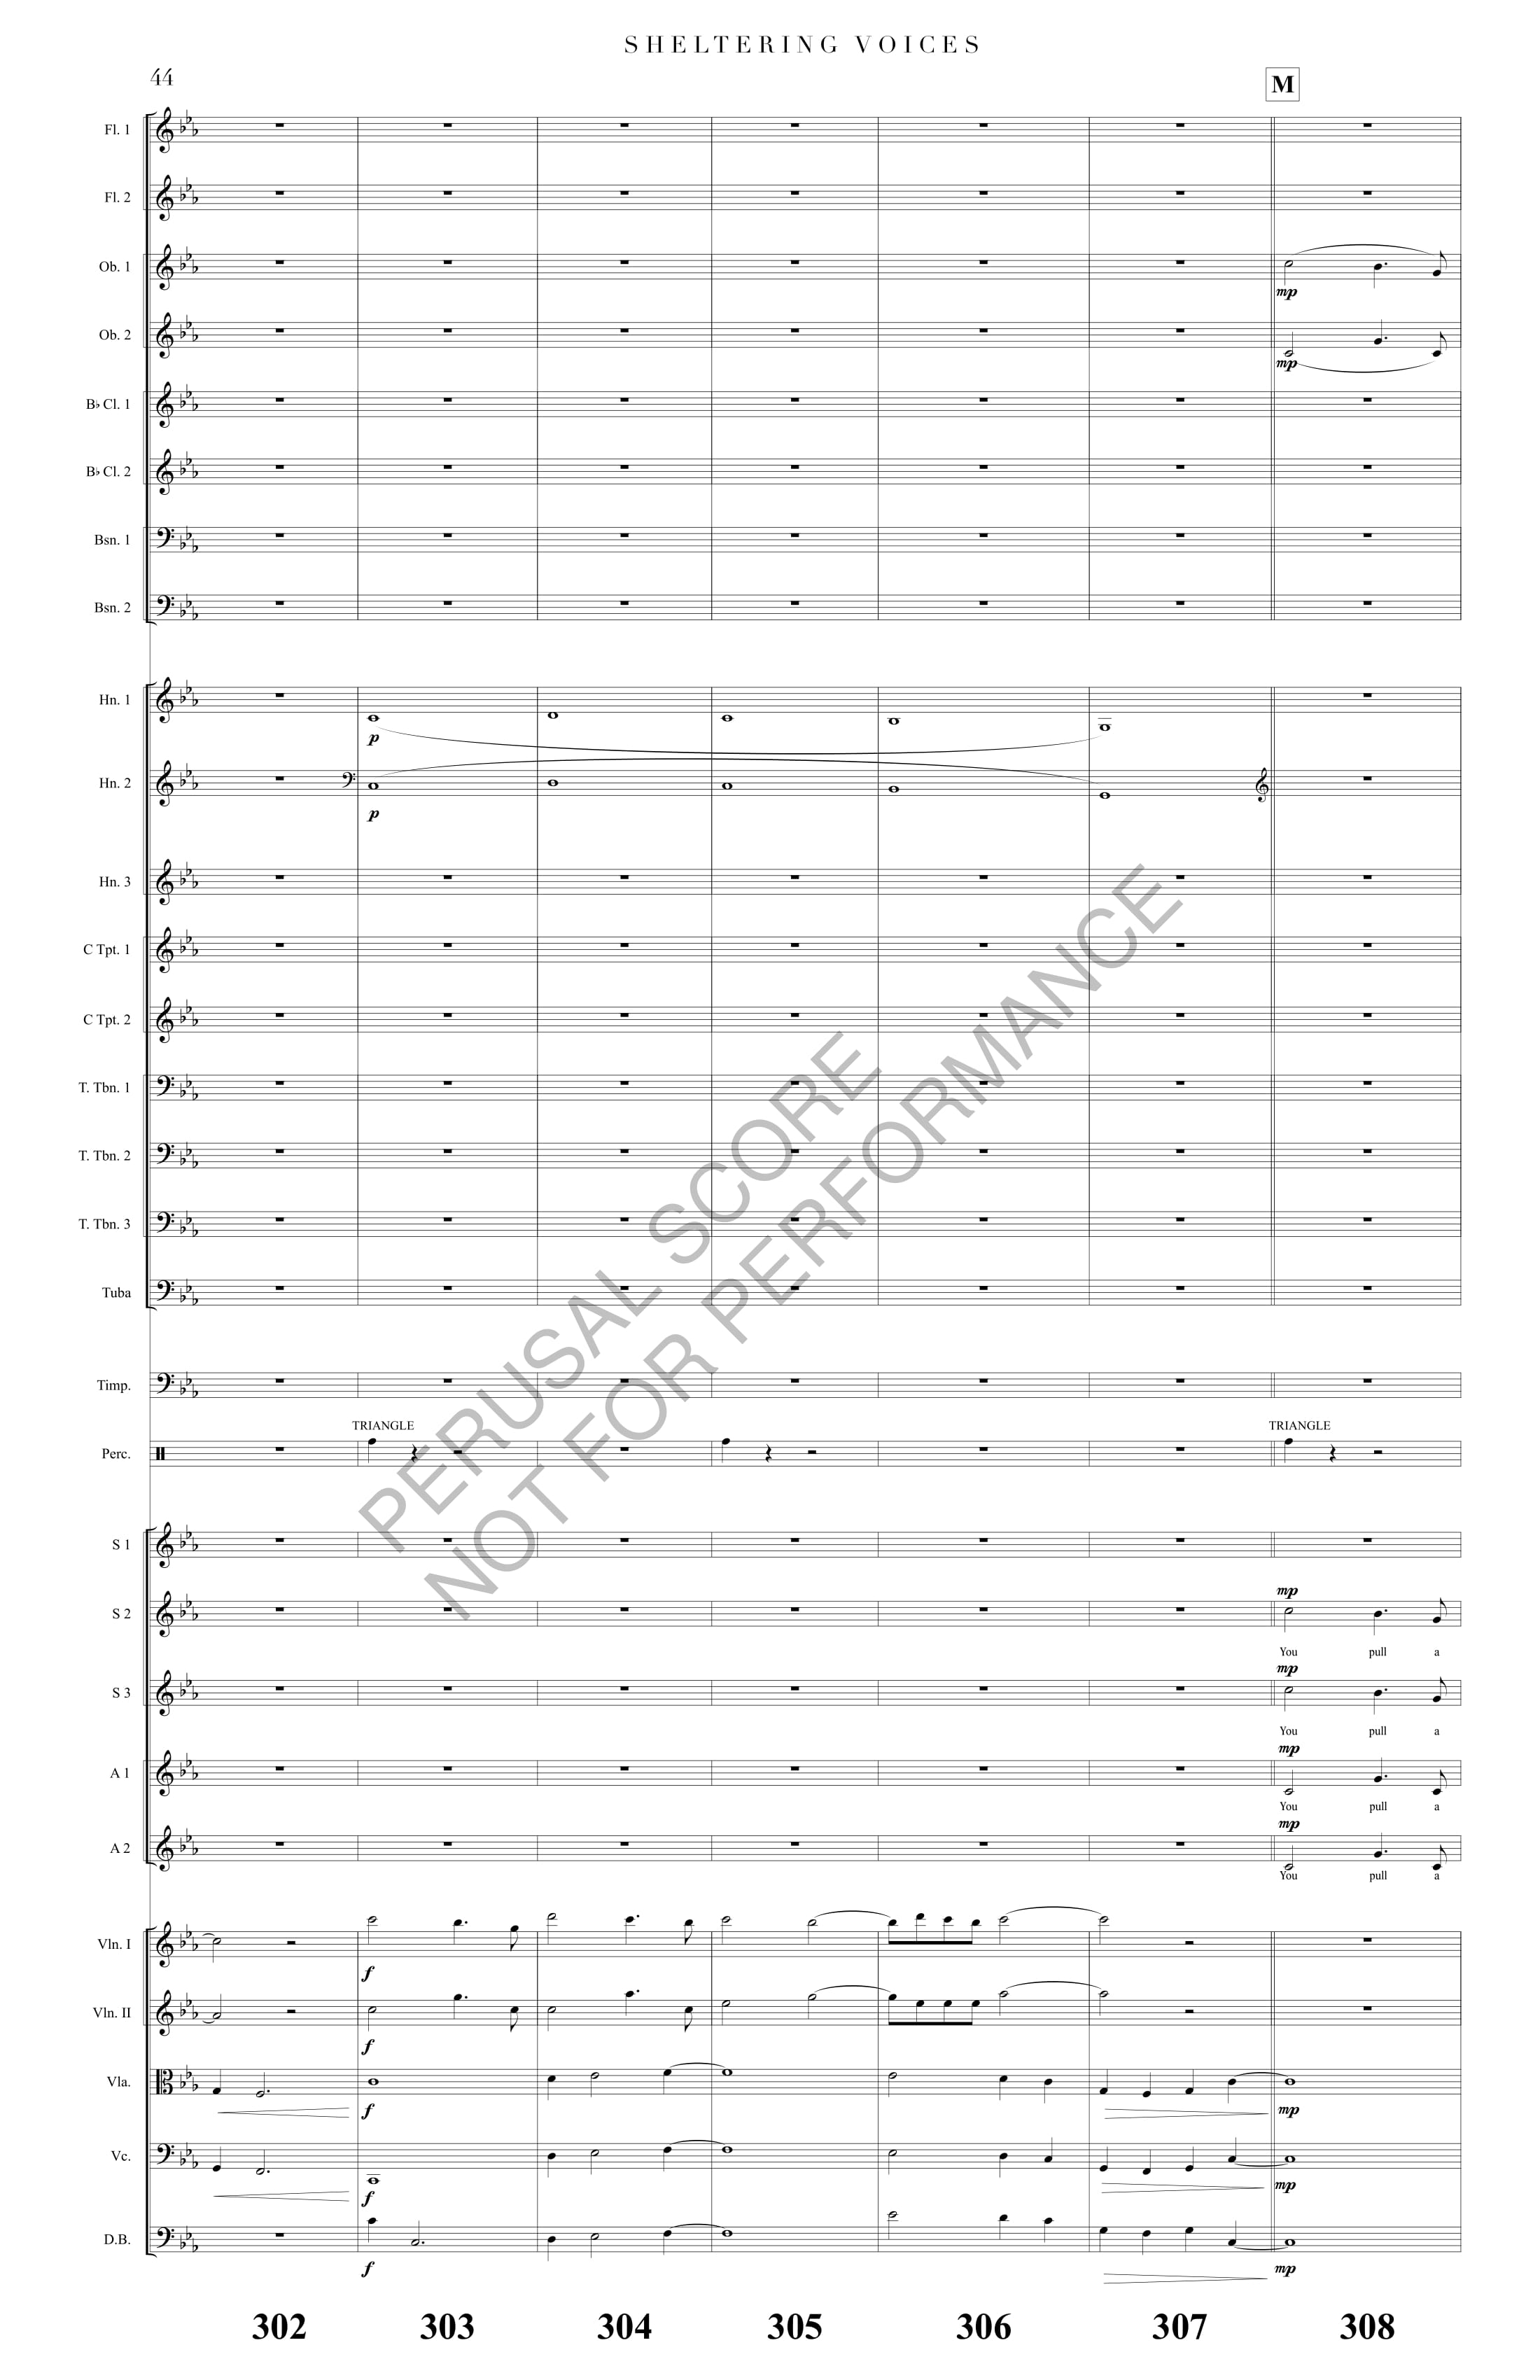 Boyd Sheltering Voices Score-watermark-52.jpg